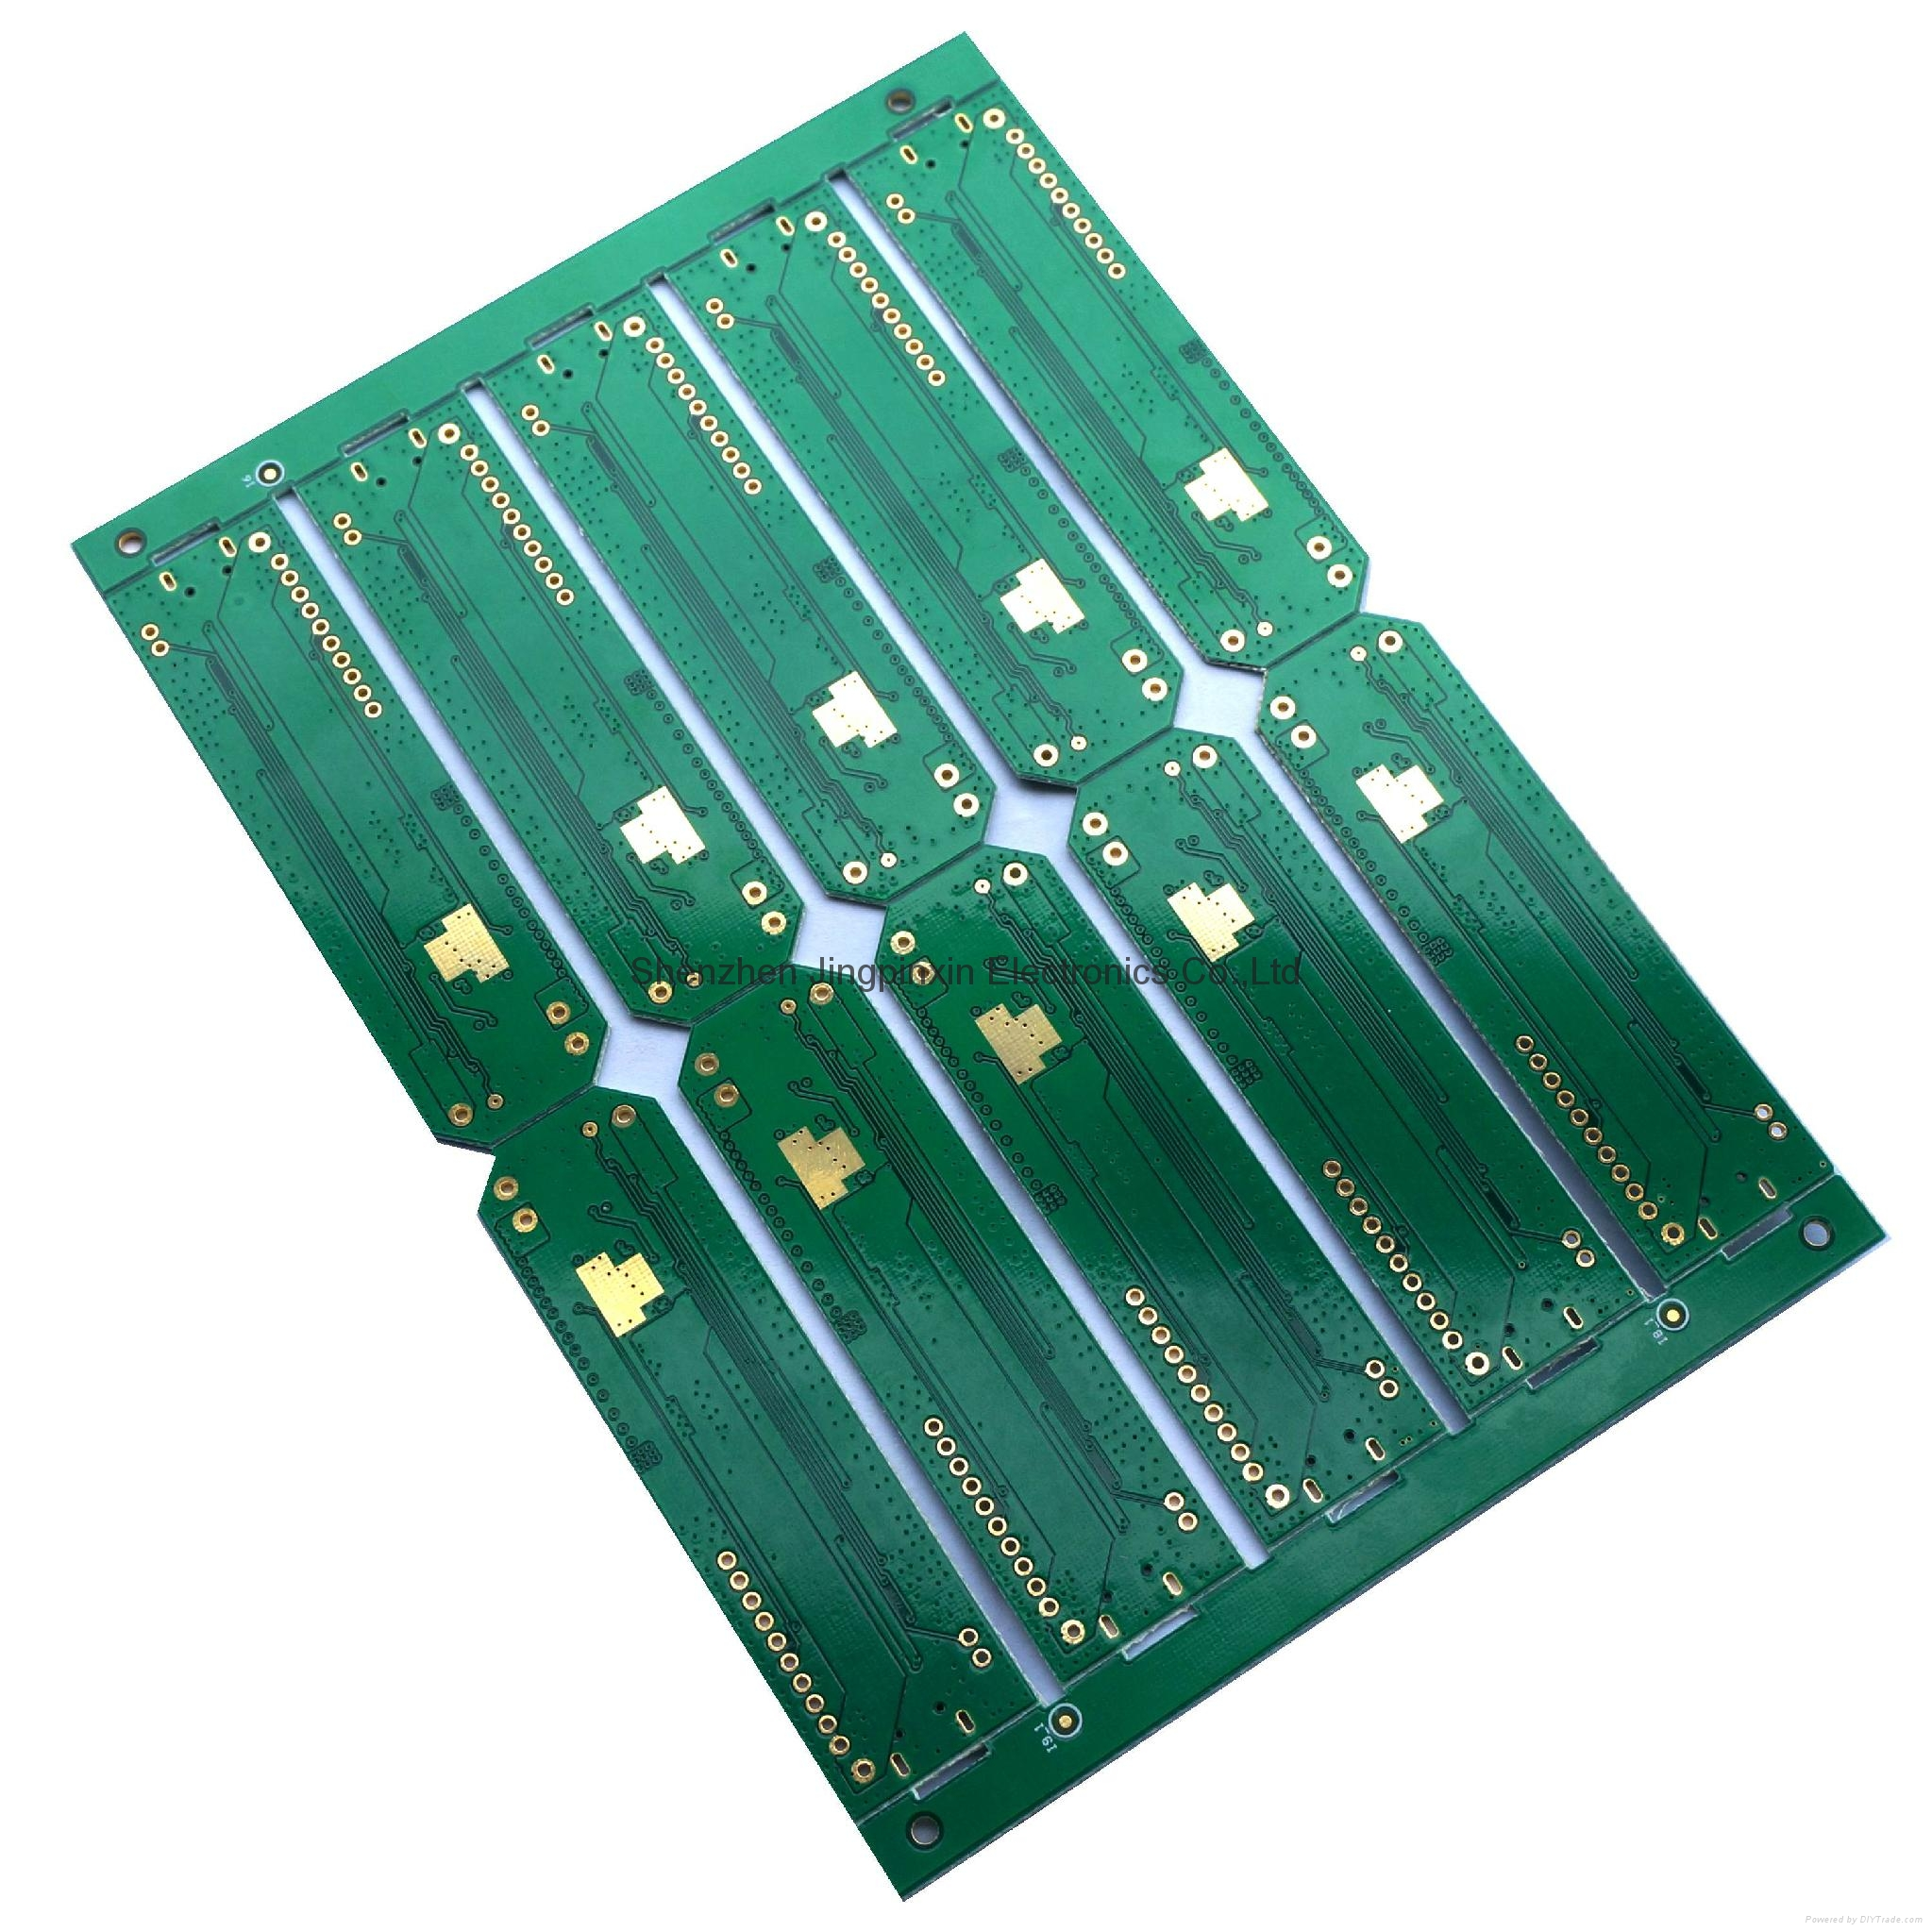 Immersion Gold Surface Finishing 4 Layer Printed Circuit Boards Board The Finished 1